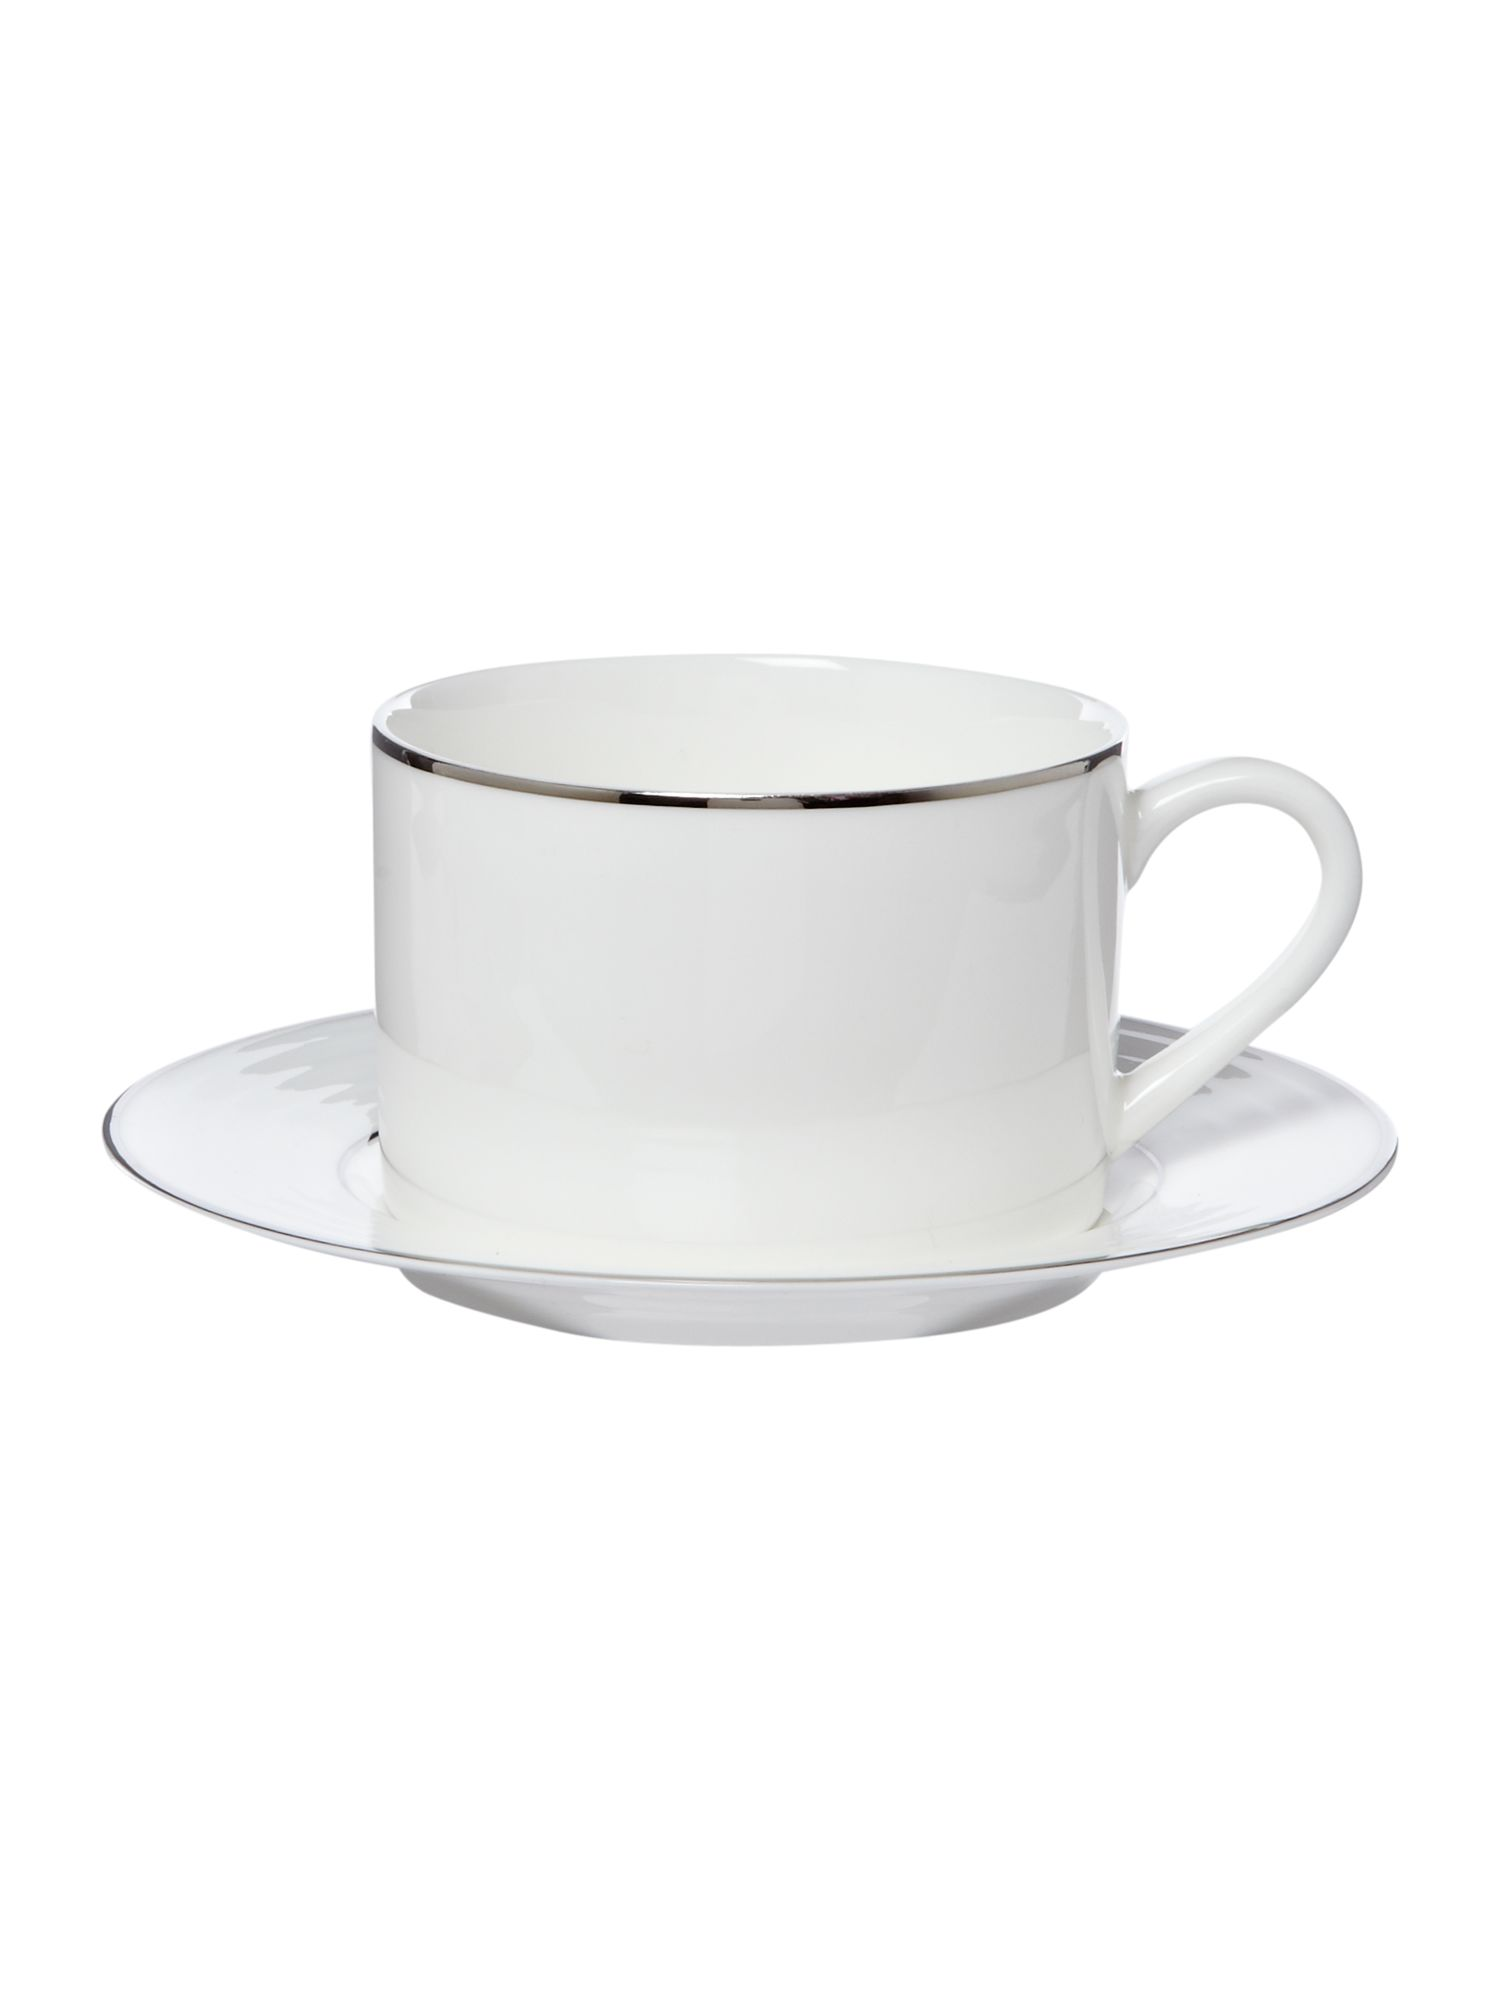 Soho platinum teacup and saucer